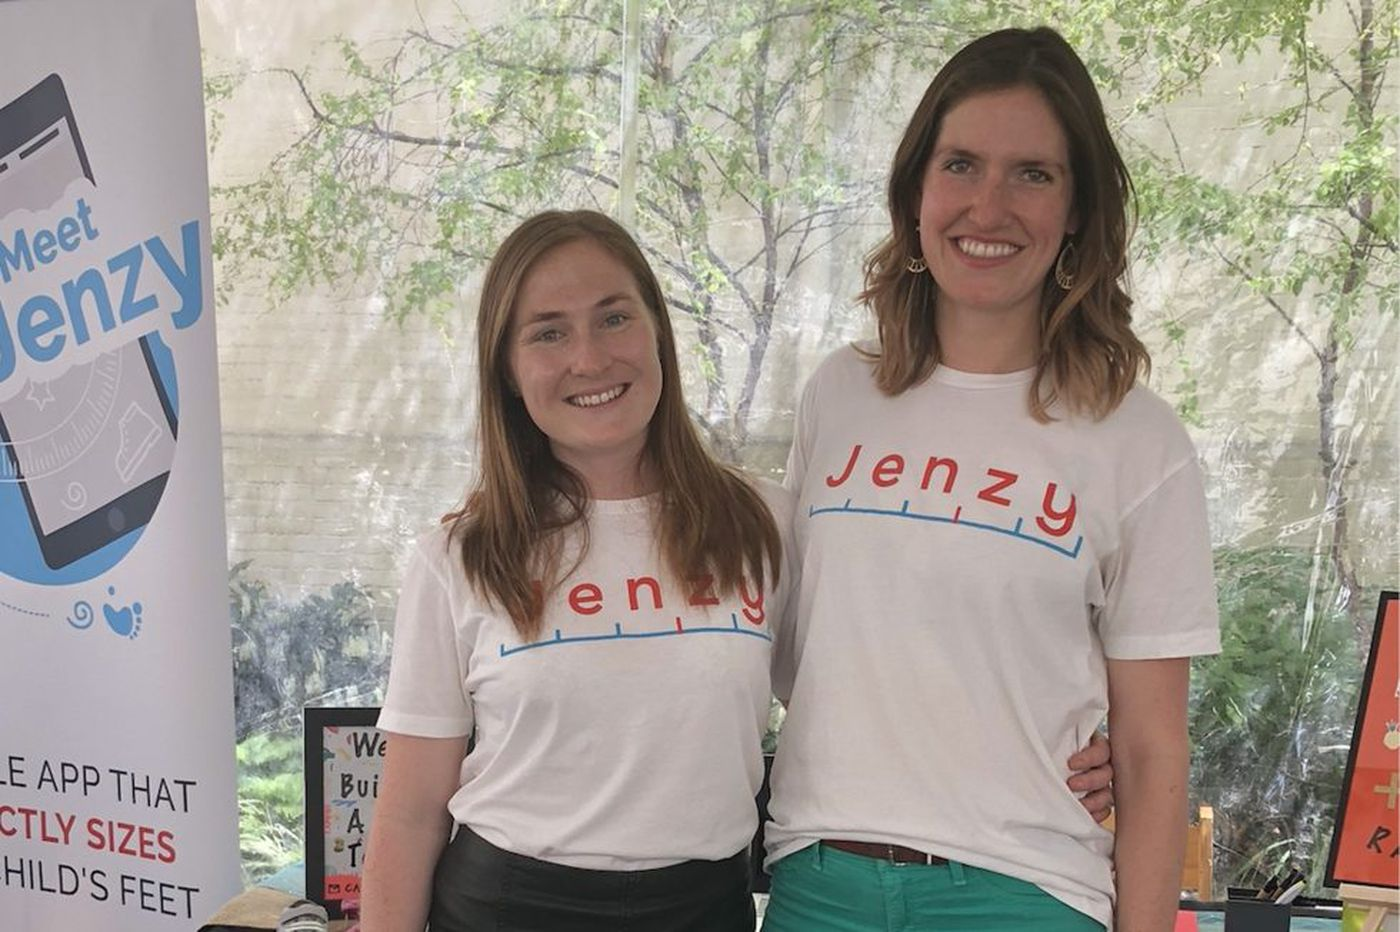 New kids' foot-sizing and shoe-shopping app from Philadelphia natives allows parents to shop from home